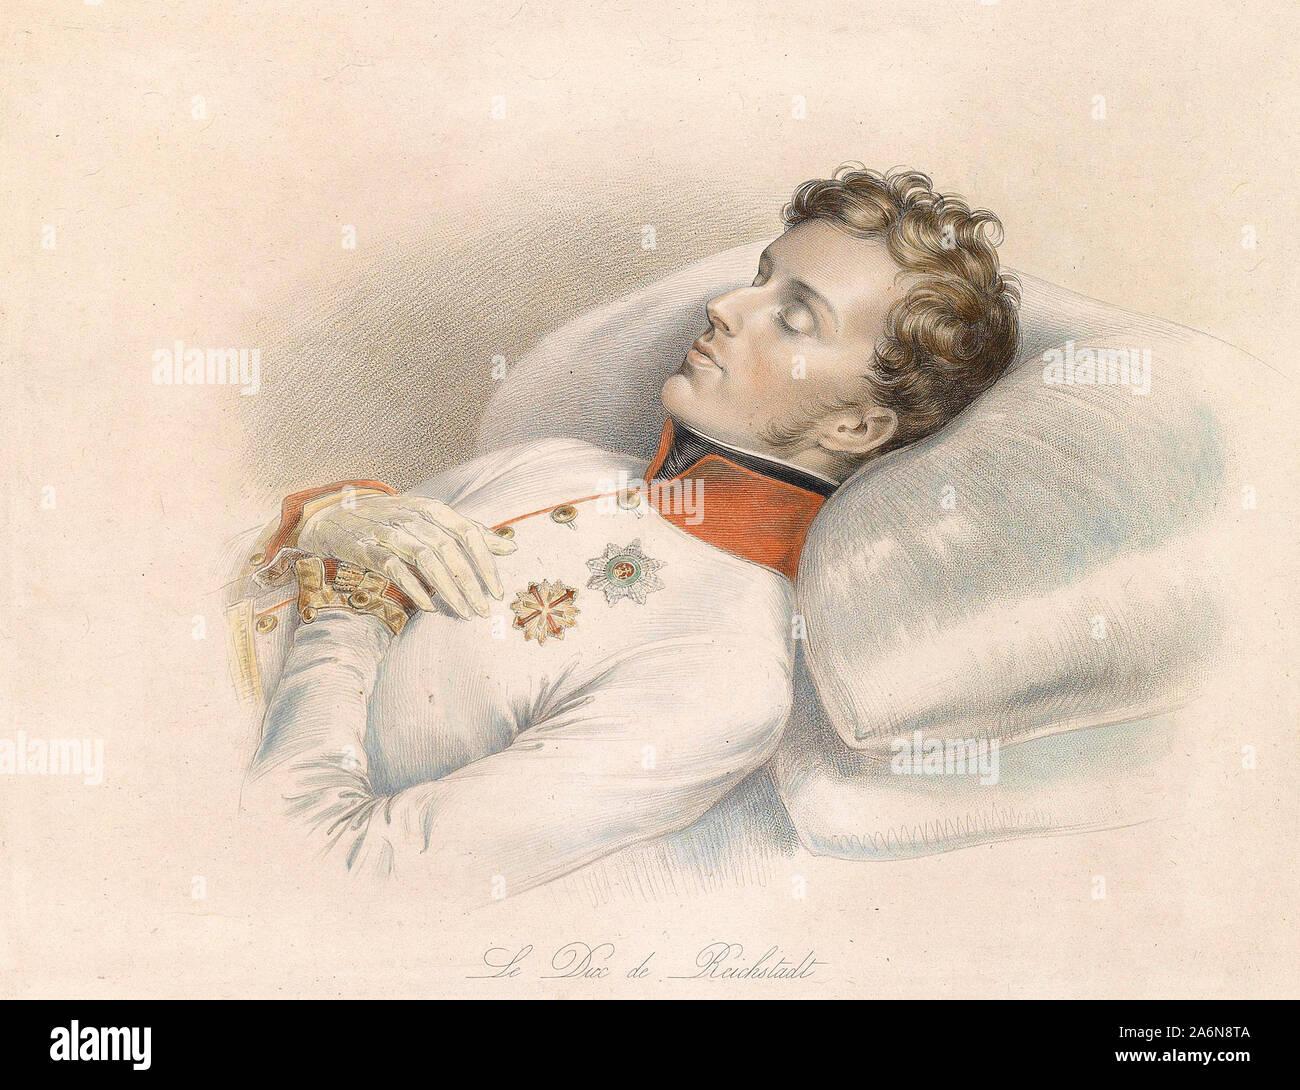 The Duke of Reichstadt (Napoleon II, 1832) on the deathbed - Franz Xaver Stober Stock Photo